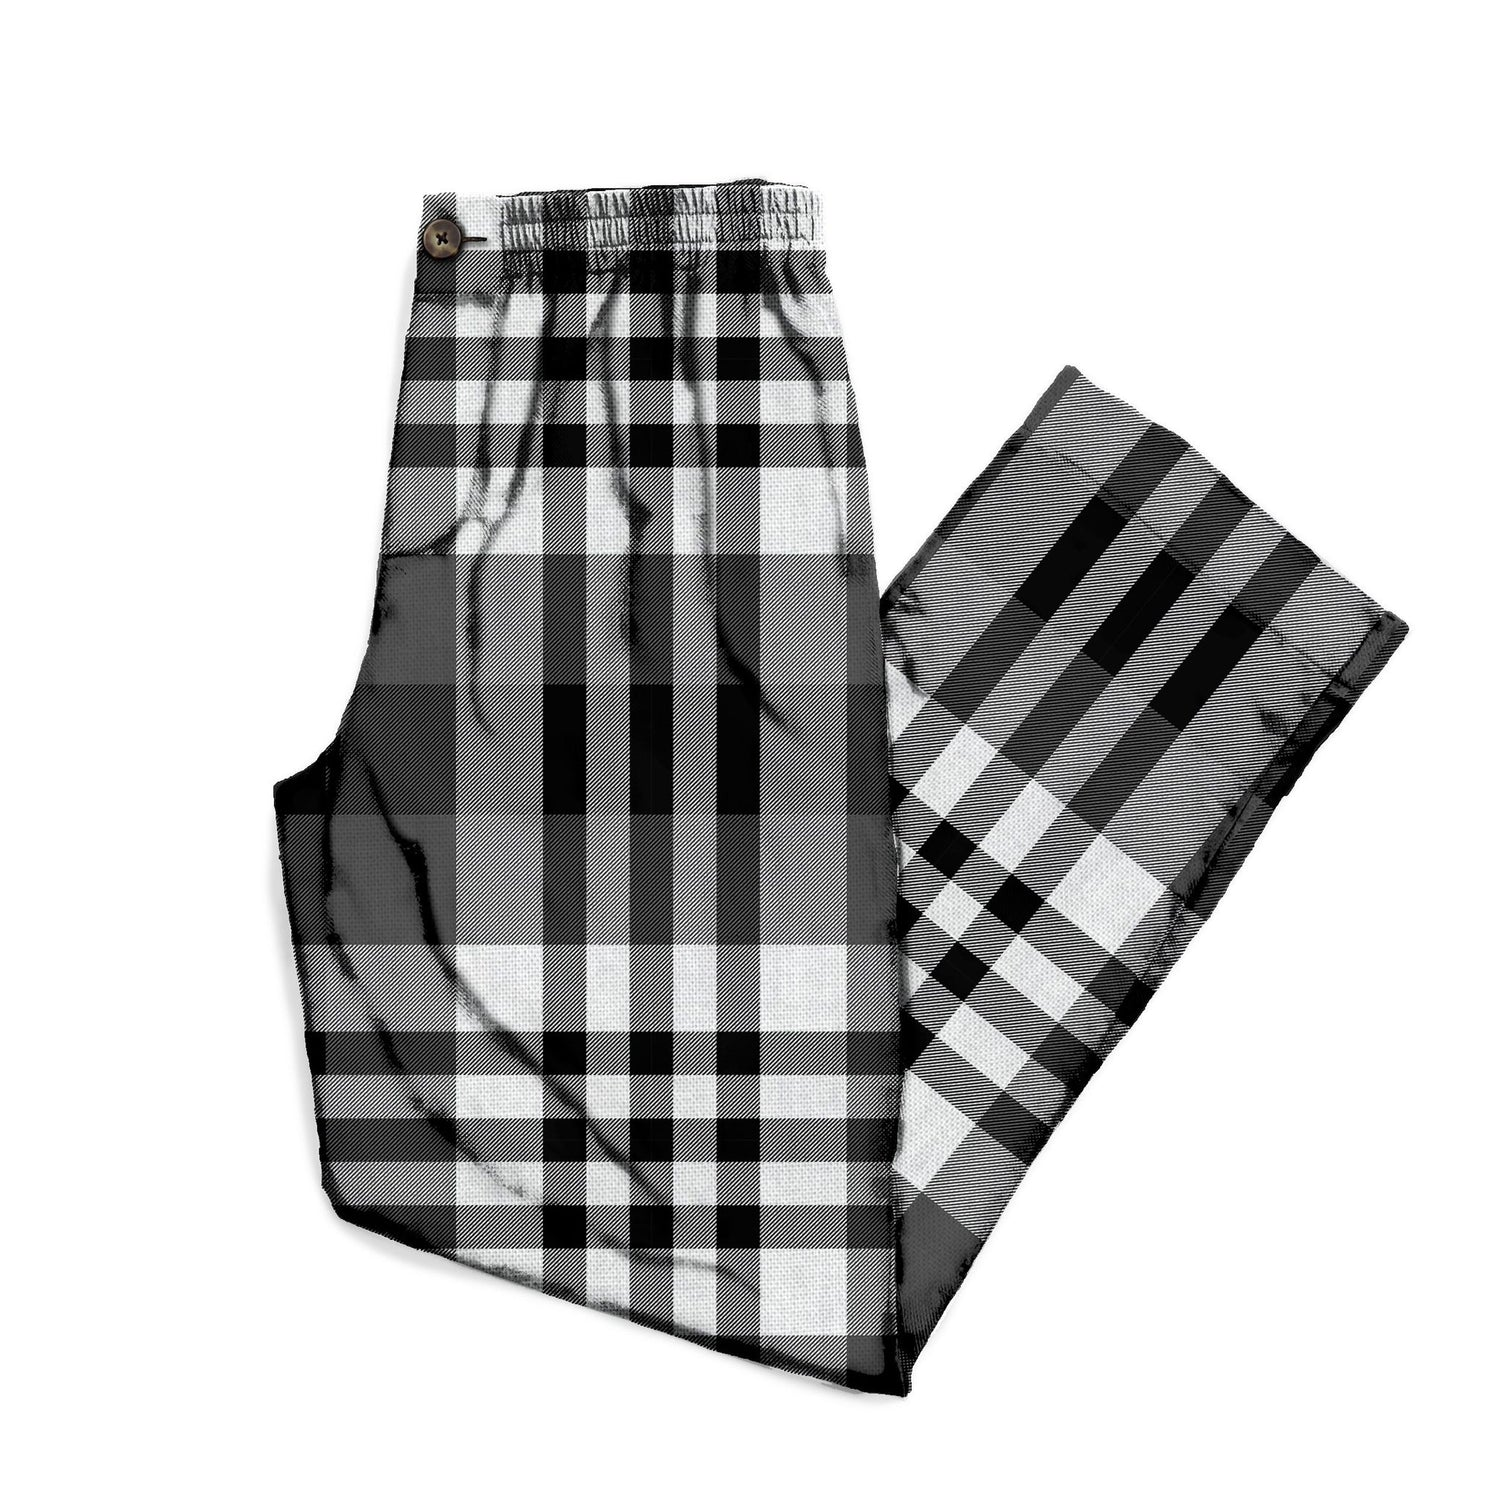 The Specials Plaid Lounge Pant